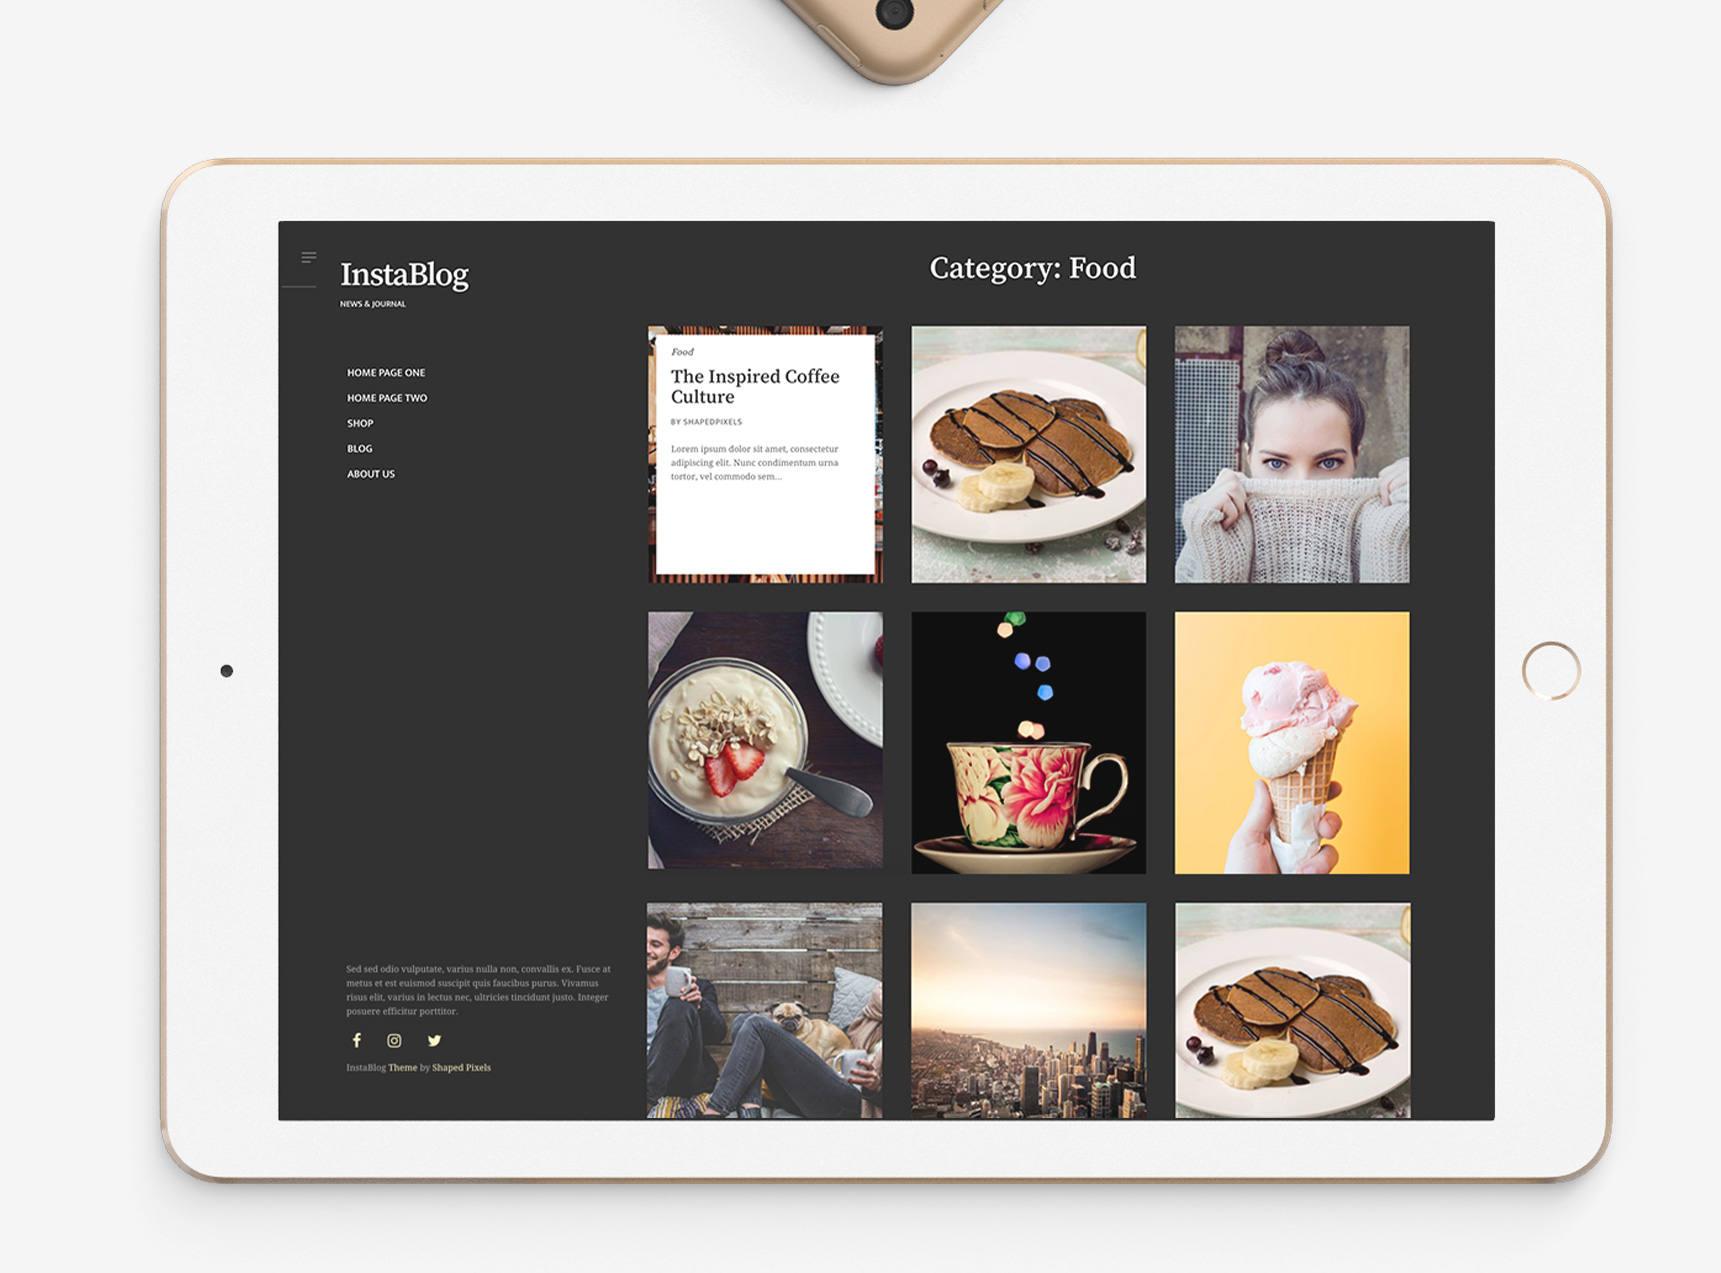 Instablog - A theme quality theme for blogging or business